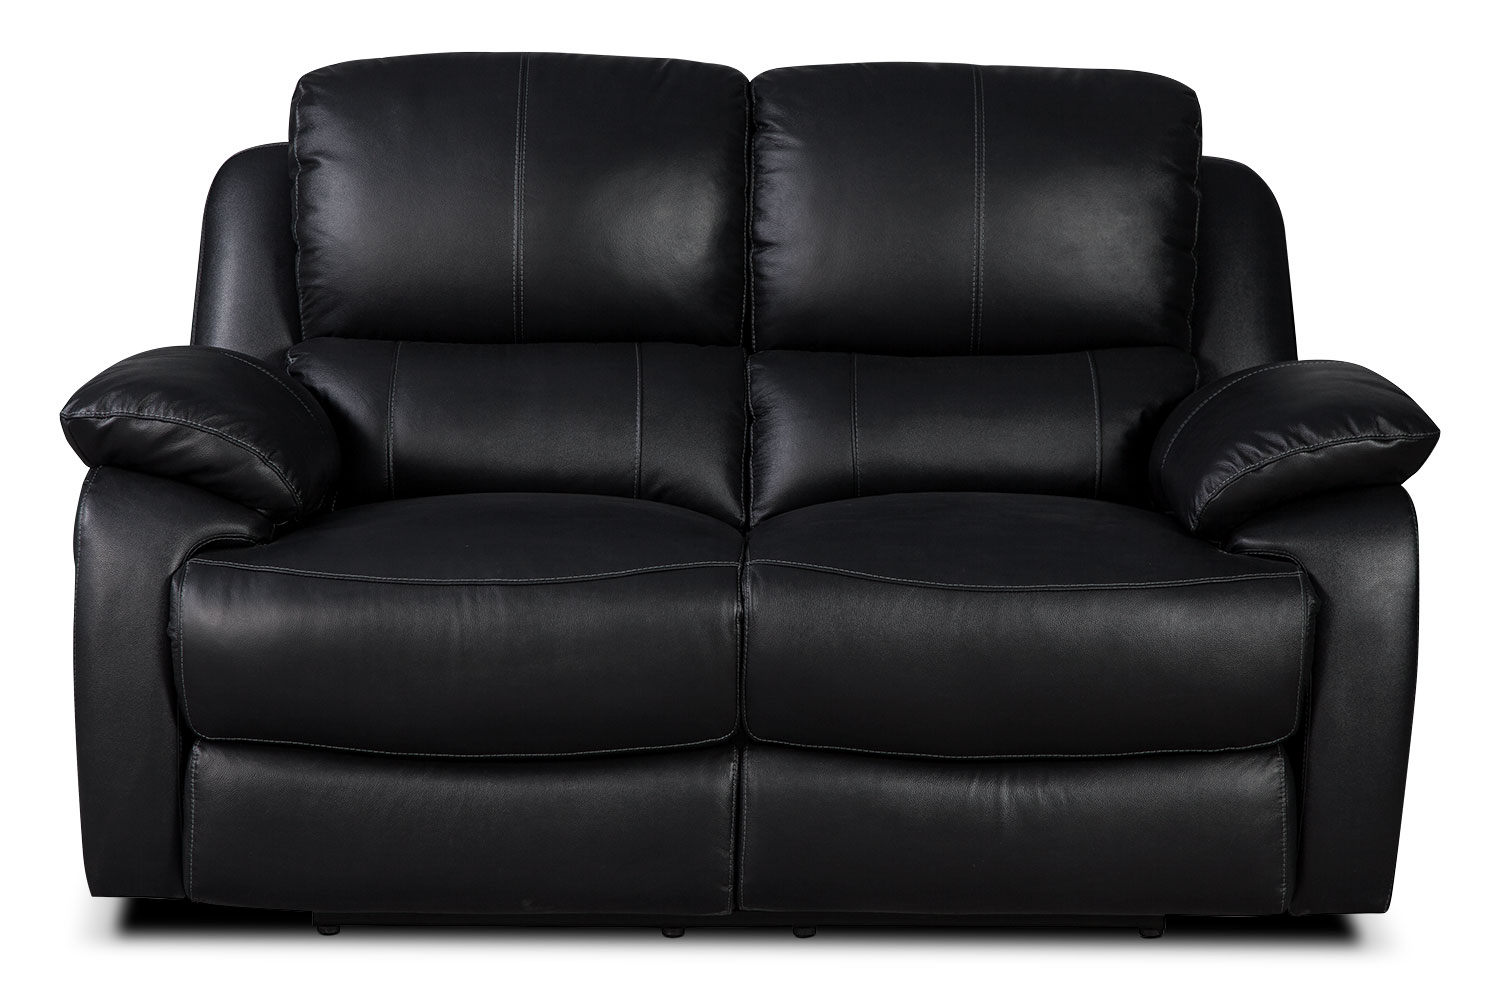 Cairo Genuine Leather Power Reclining Loveseat – Black